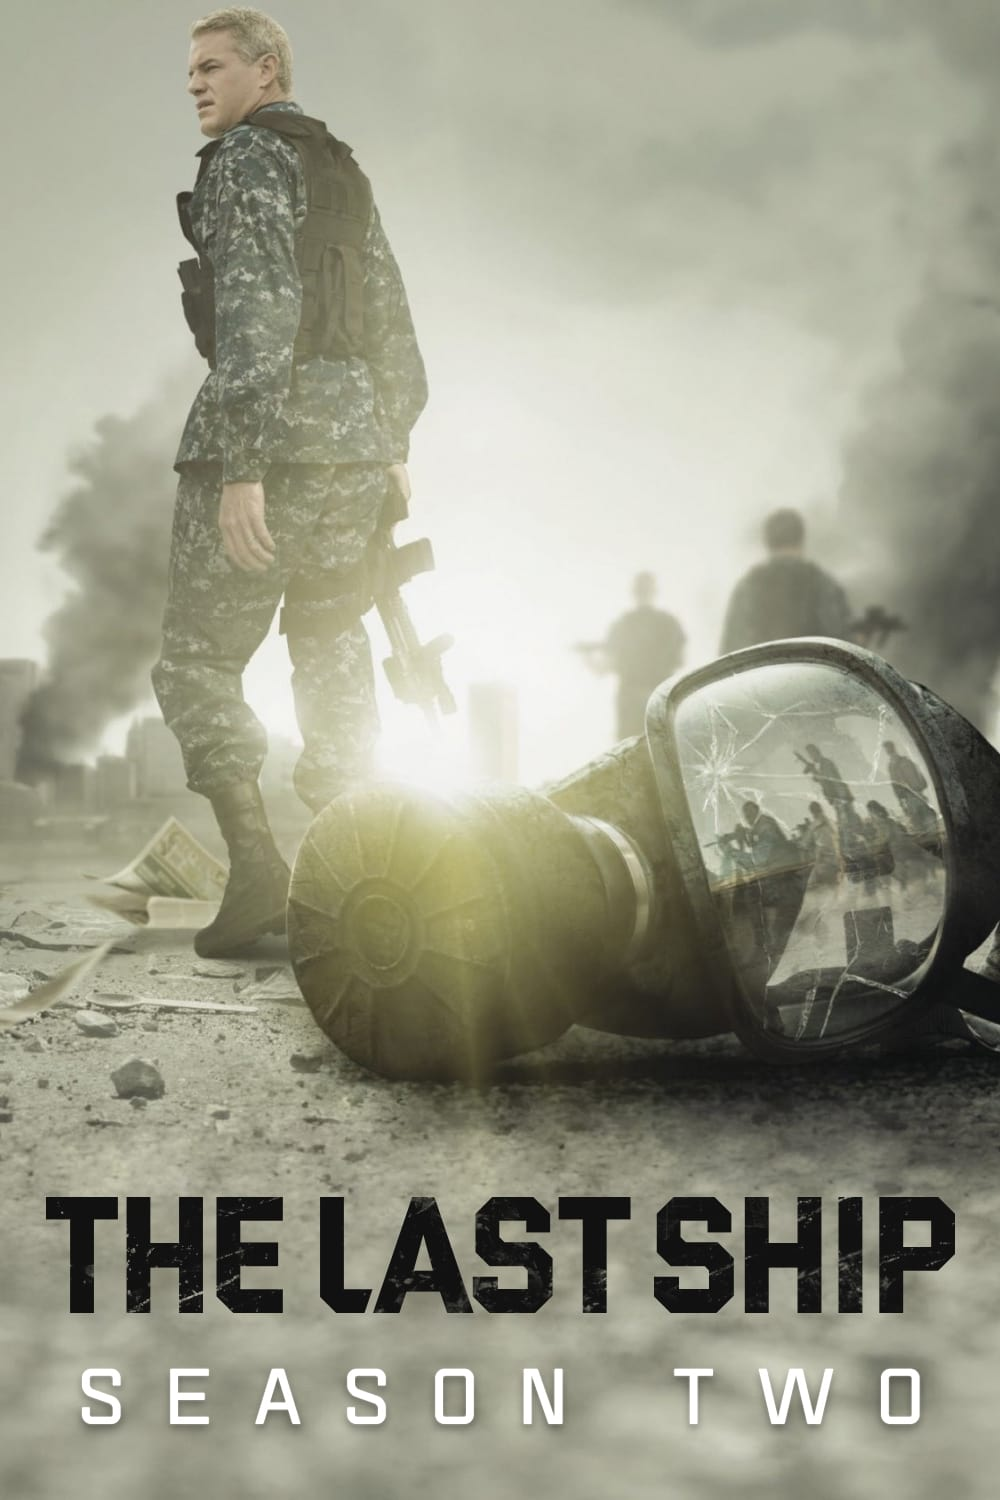 Baixar Serie The Last Ship 2ª Temporada Completa Dublado Via torrent